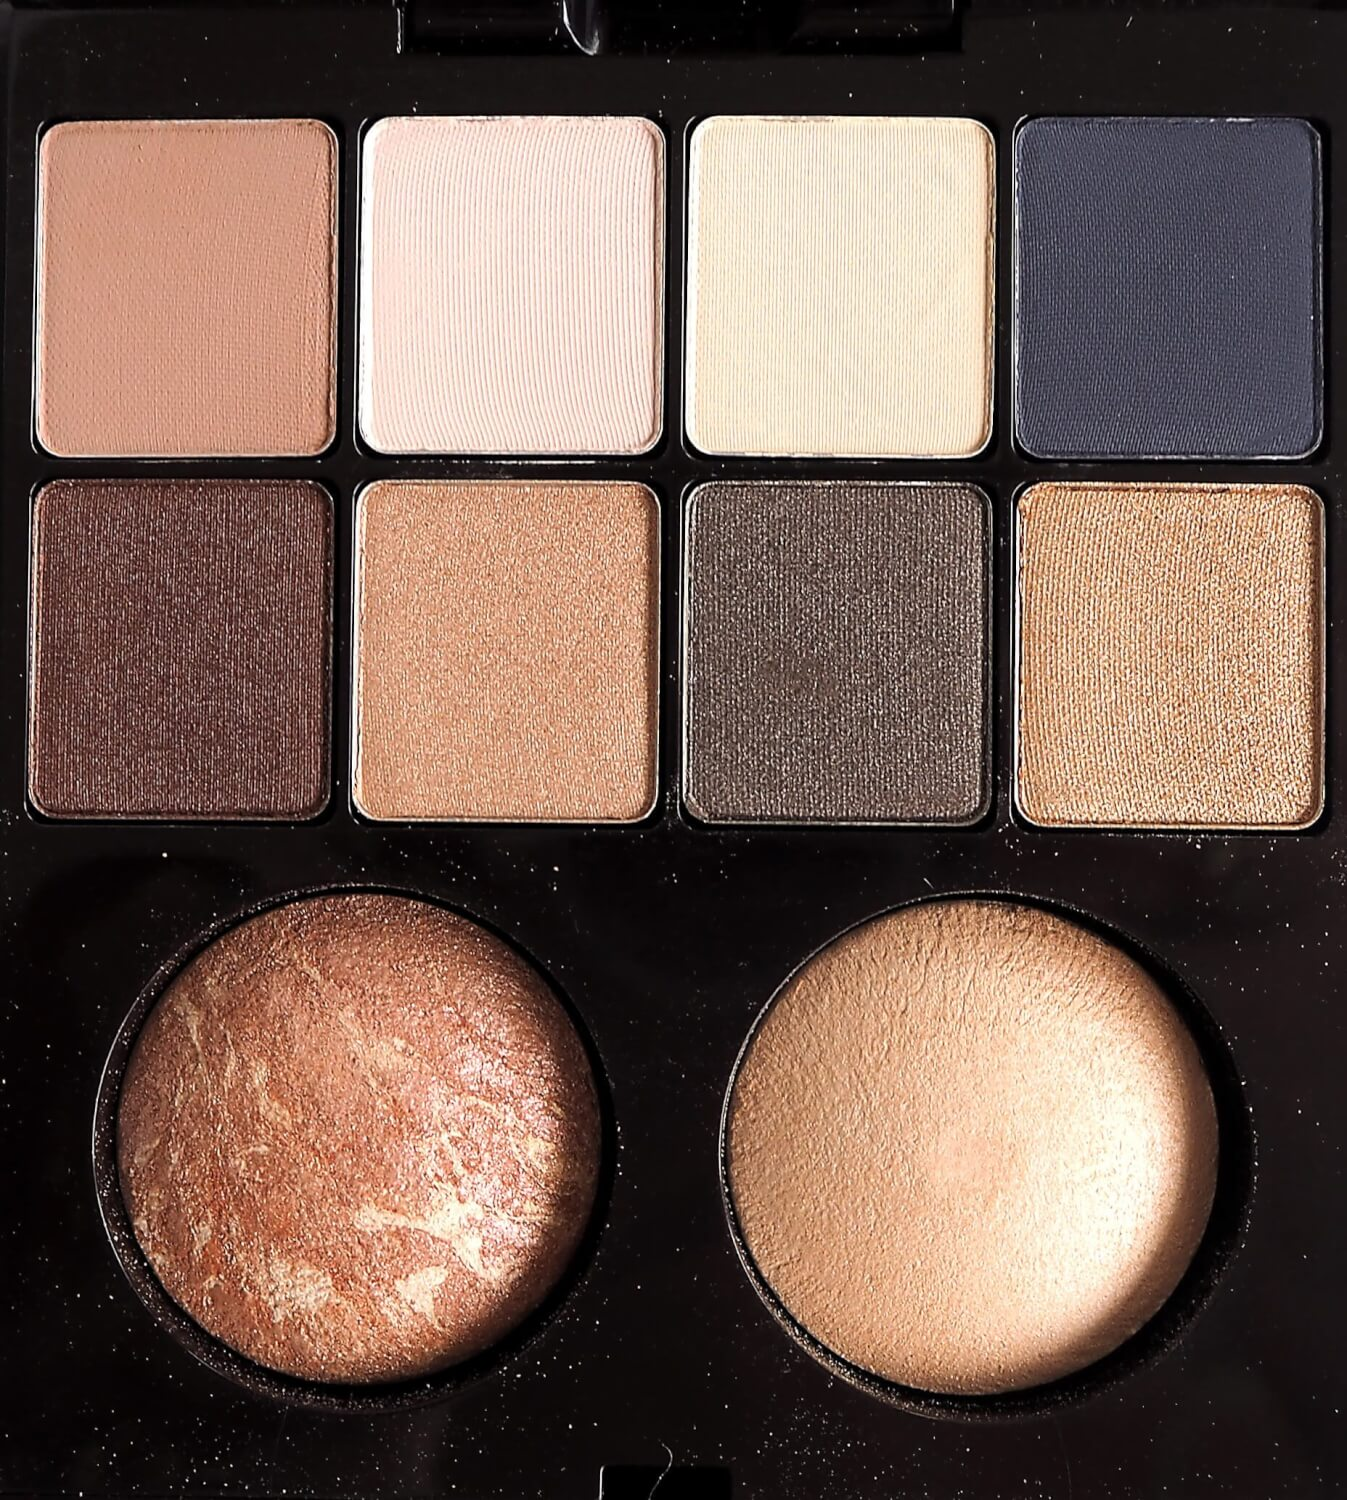 Paleta Laura Mercier Essential Art Eye & Cheek Palette